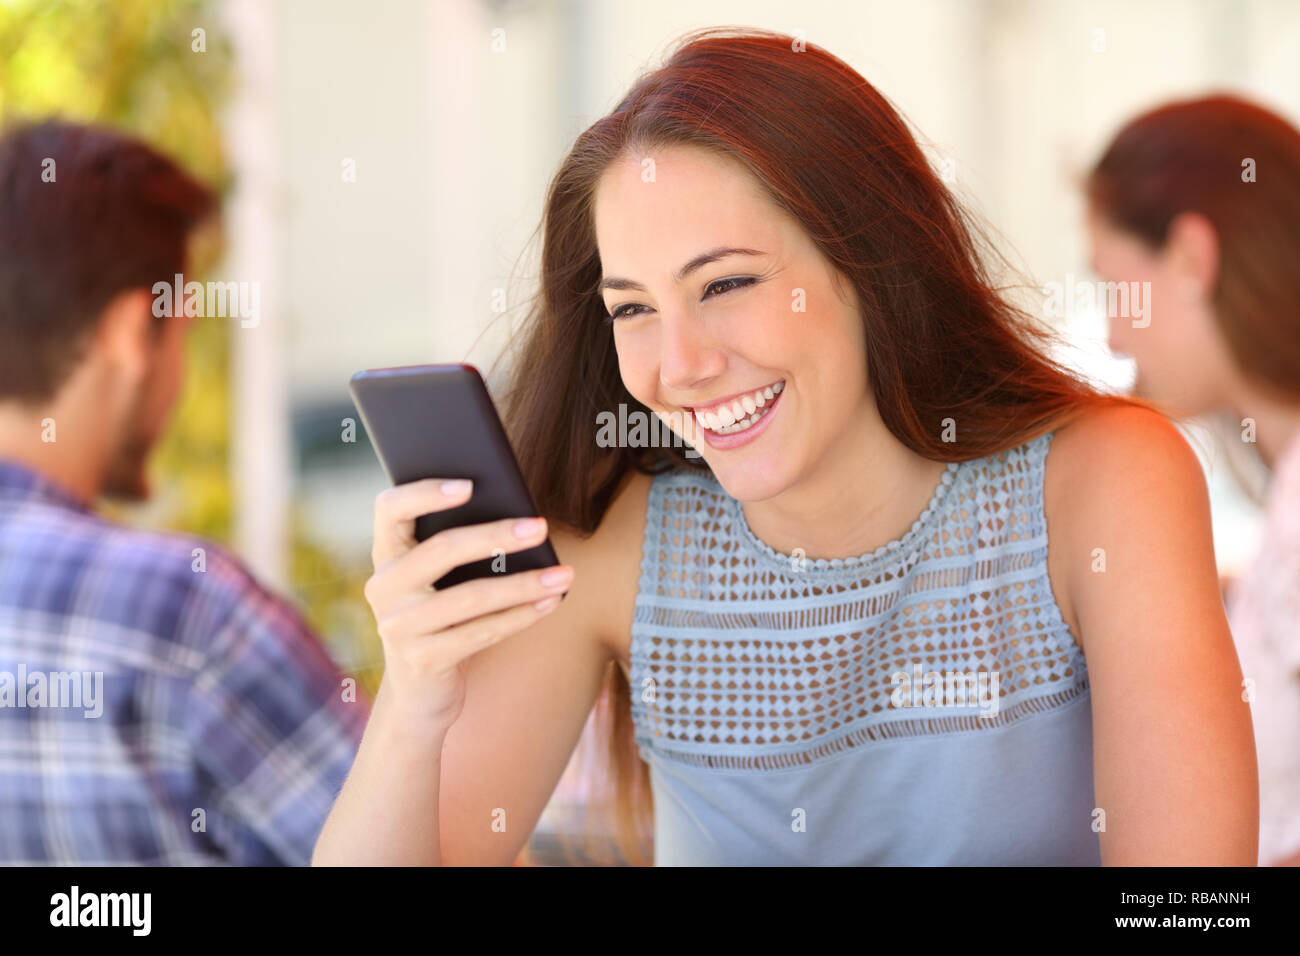 Happy woman reading message on a smart phone sitting in a bar terrace - Stock Image